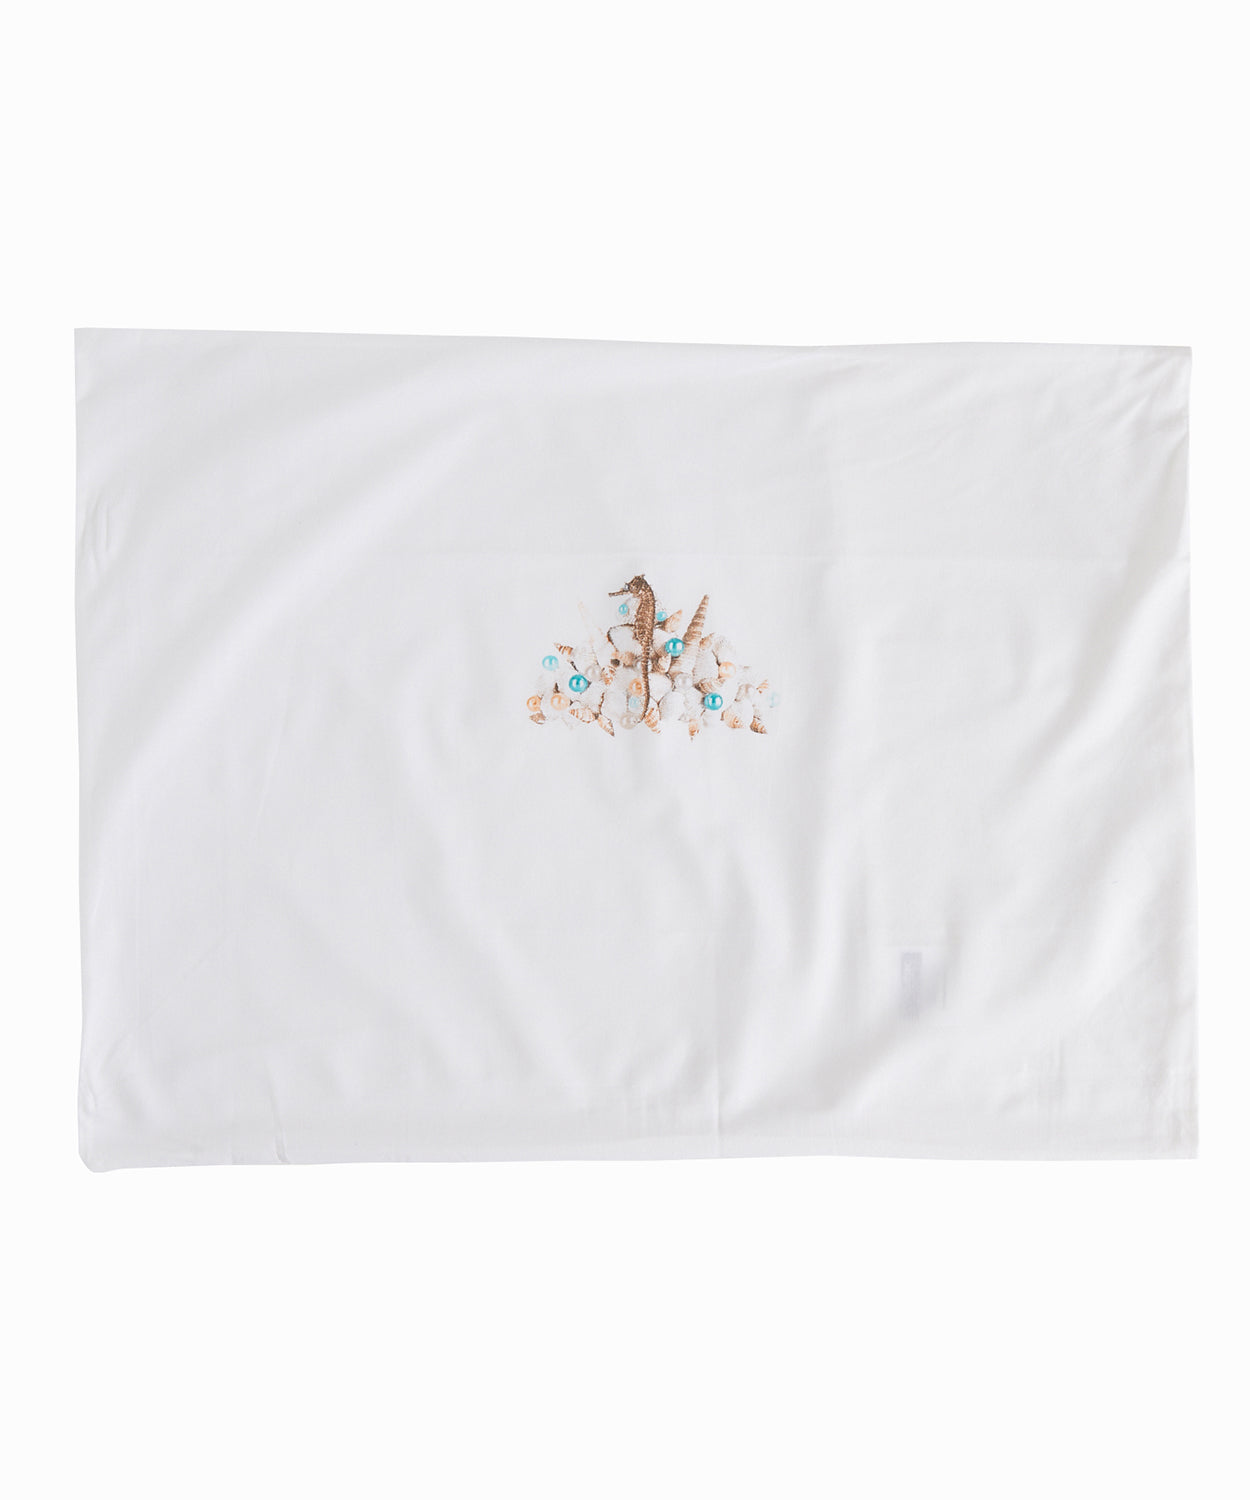 Mermaid Twin Duvet and Pillow Case Set